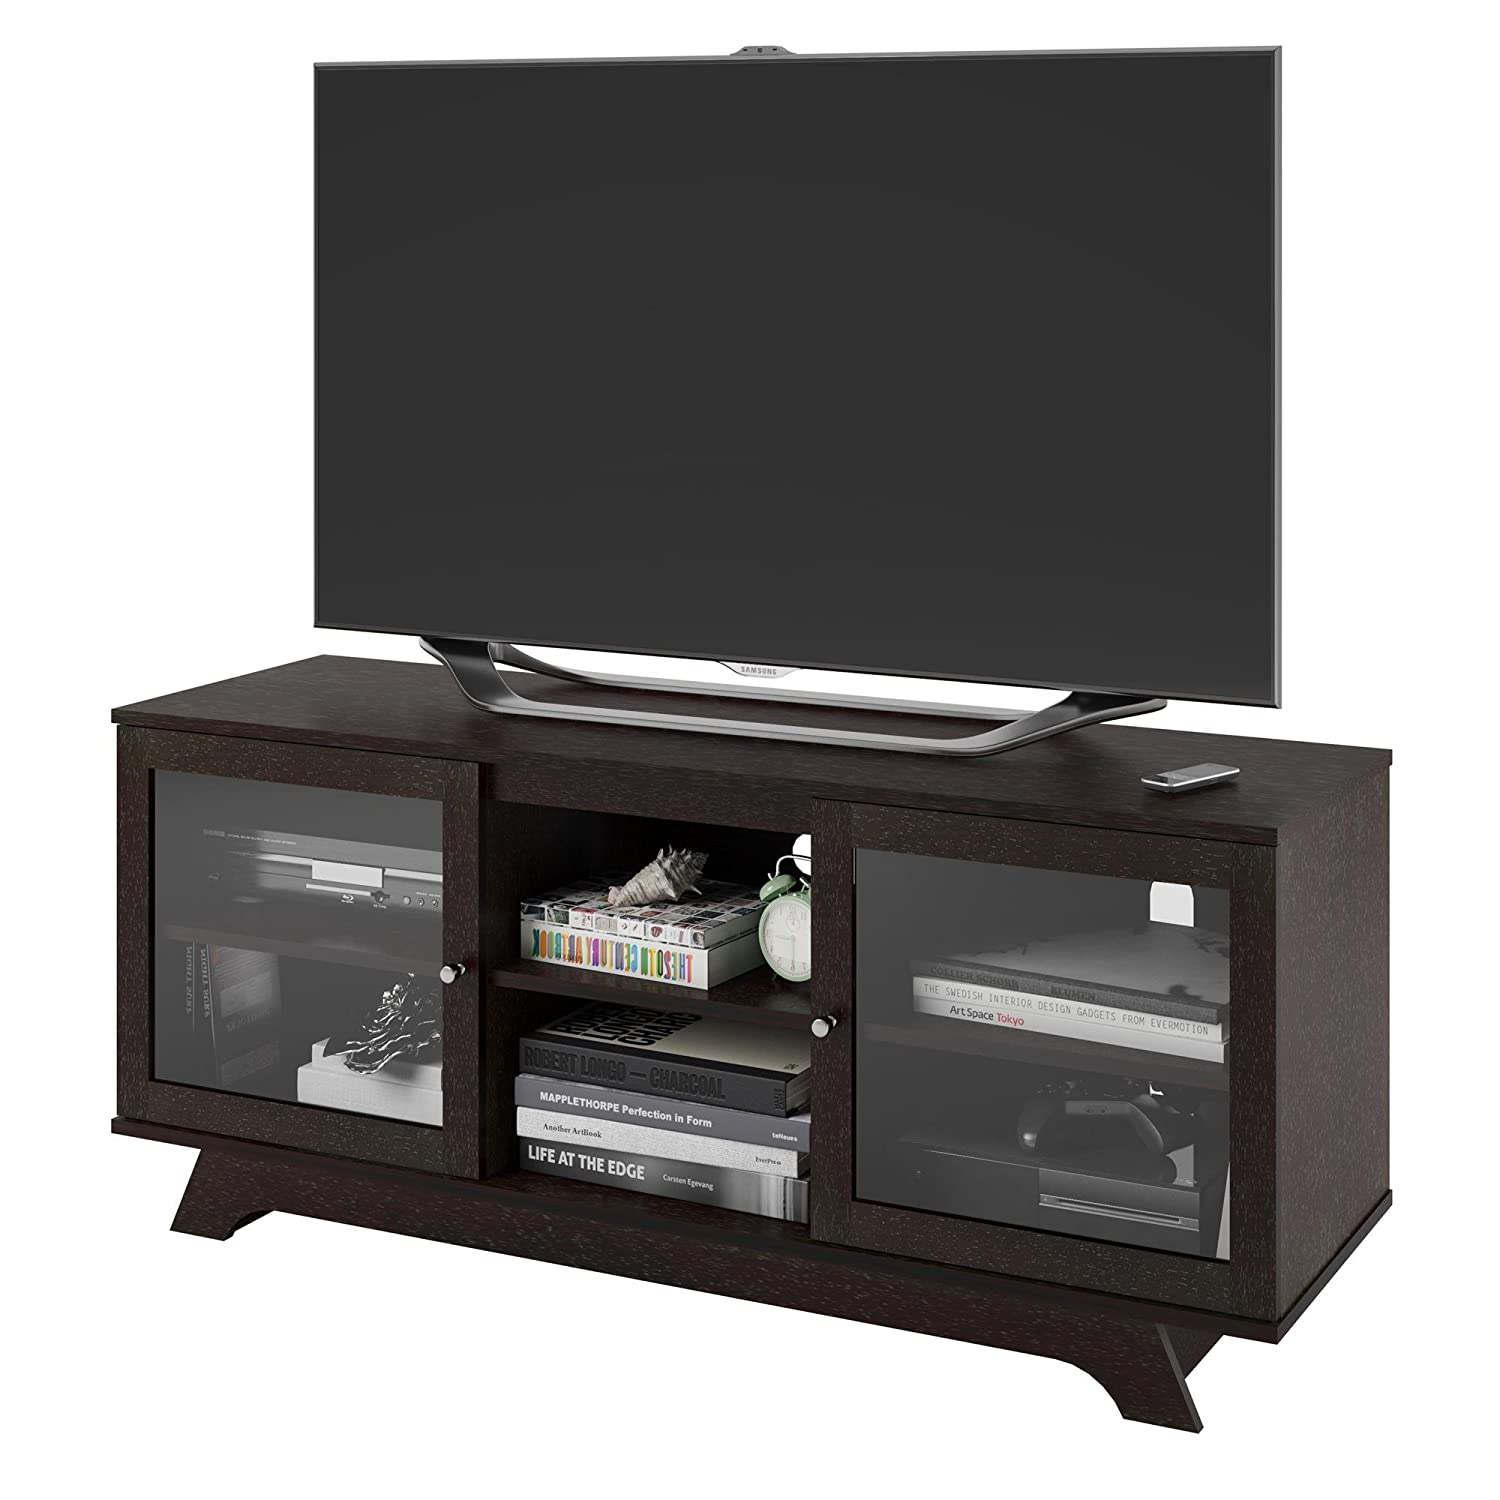 Amazon.com: Ameriwood Home Englewood TV Stand for TVs up to 55 ...